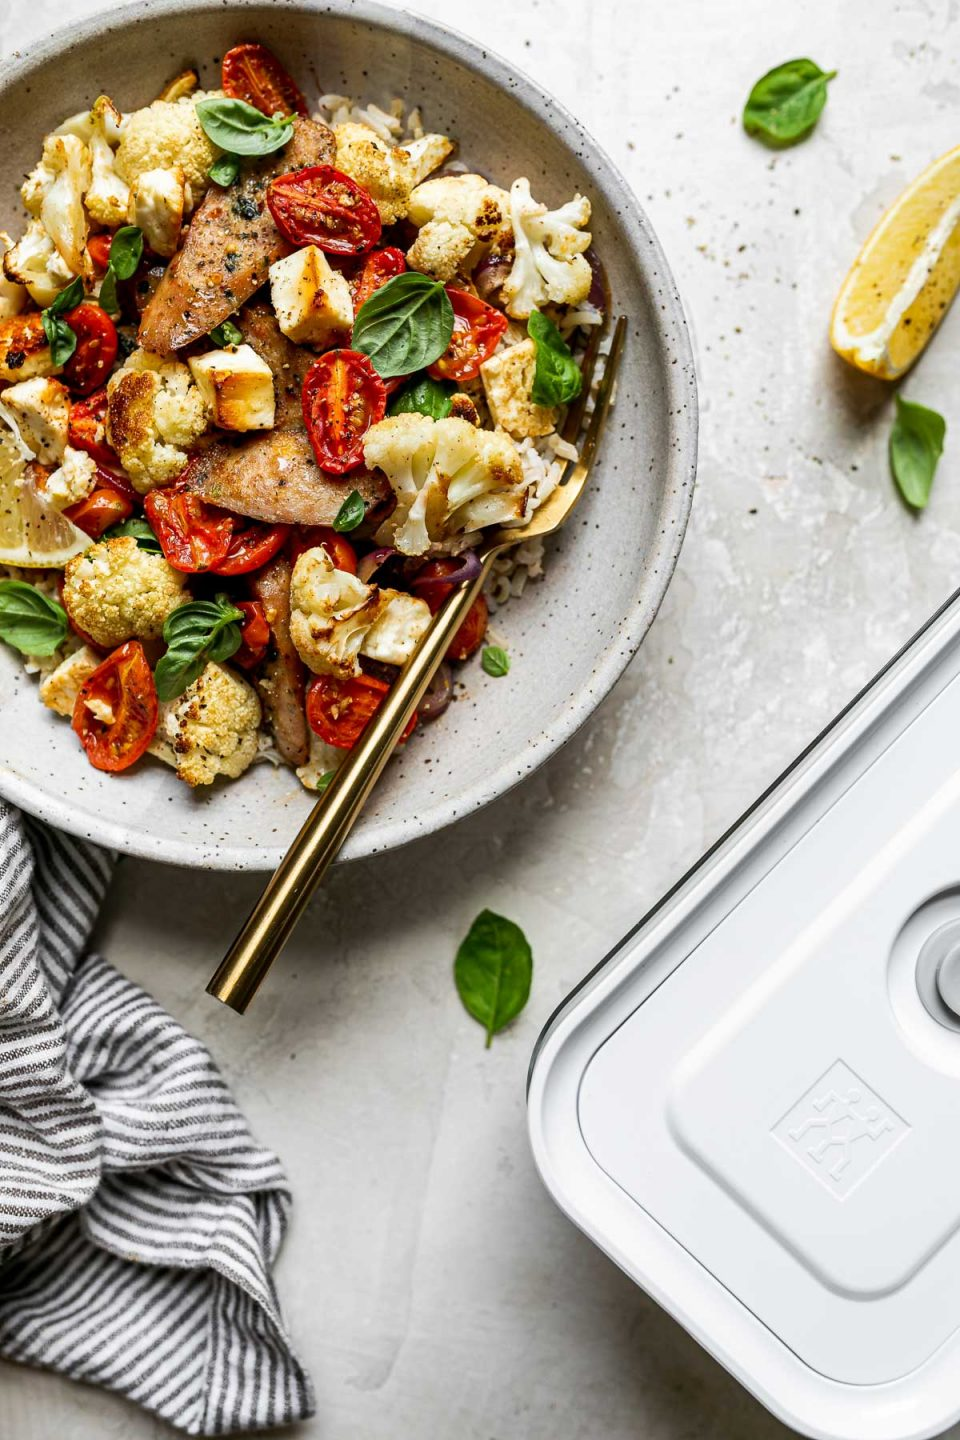 Sheet Pan Chicken Sausage and Veggies plated in a gray ceramic bowl over rice. The bowl has a gold fork in it and sits atop a creamy cement surface alongside a gray striped linen napkin, fresh basil leaves, & a Zwilling Fresh & Save container.